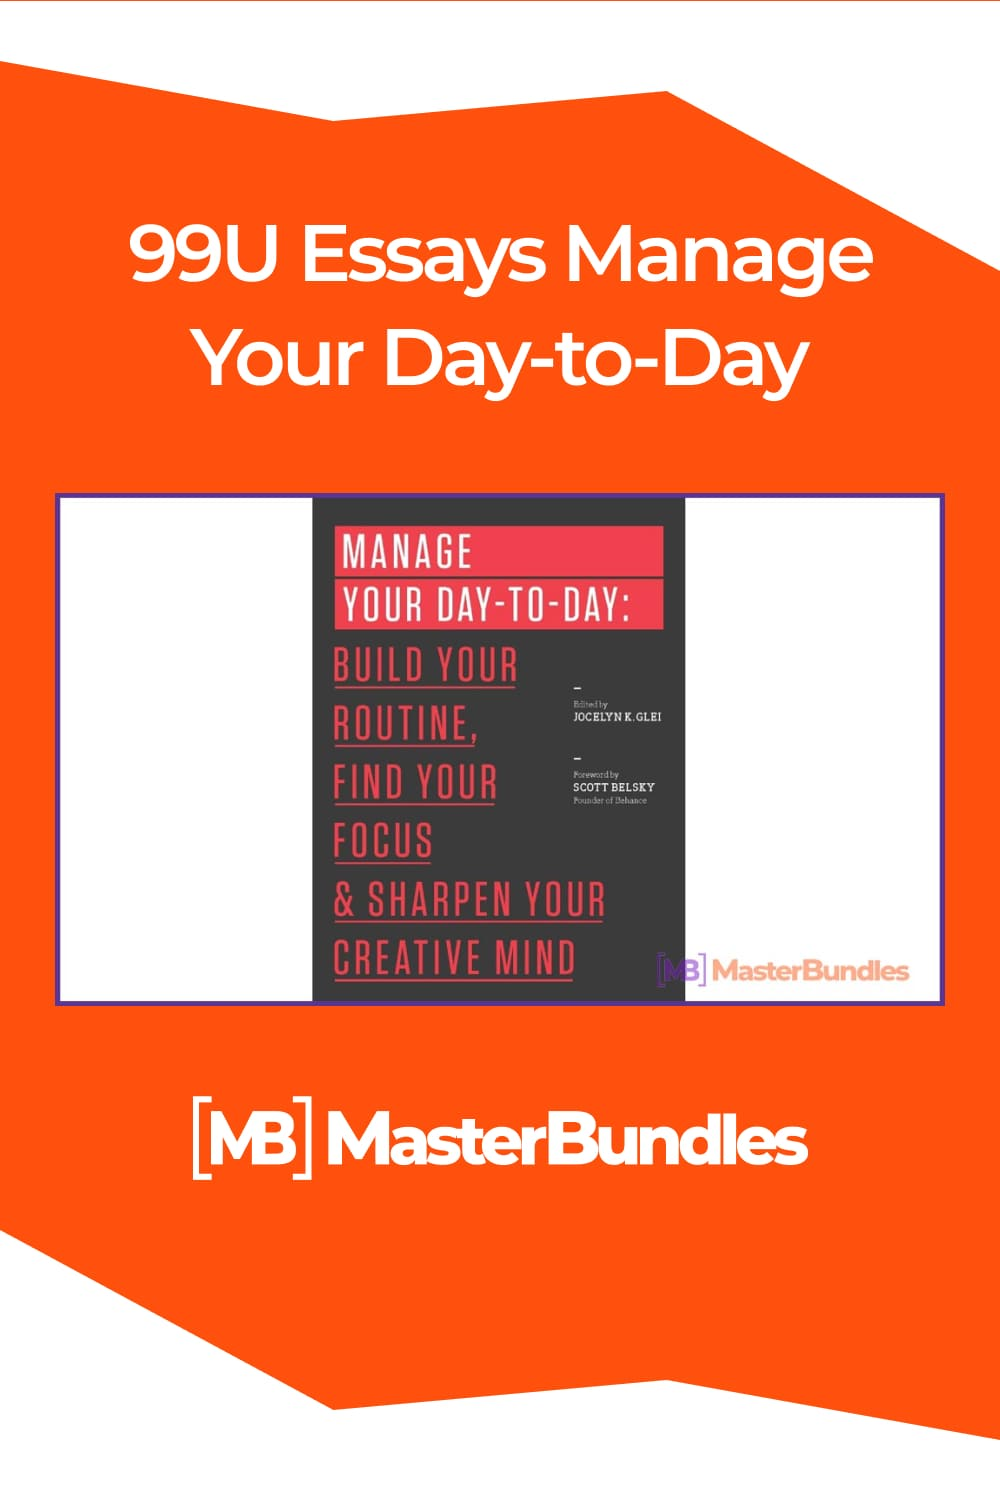 Manage your day-to-day: build your routine, find your focus, and sharpen your creative mind.